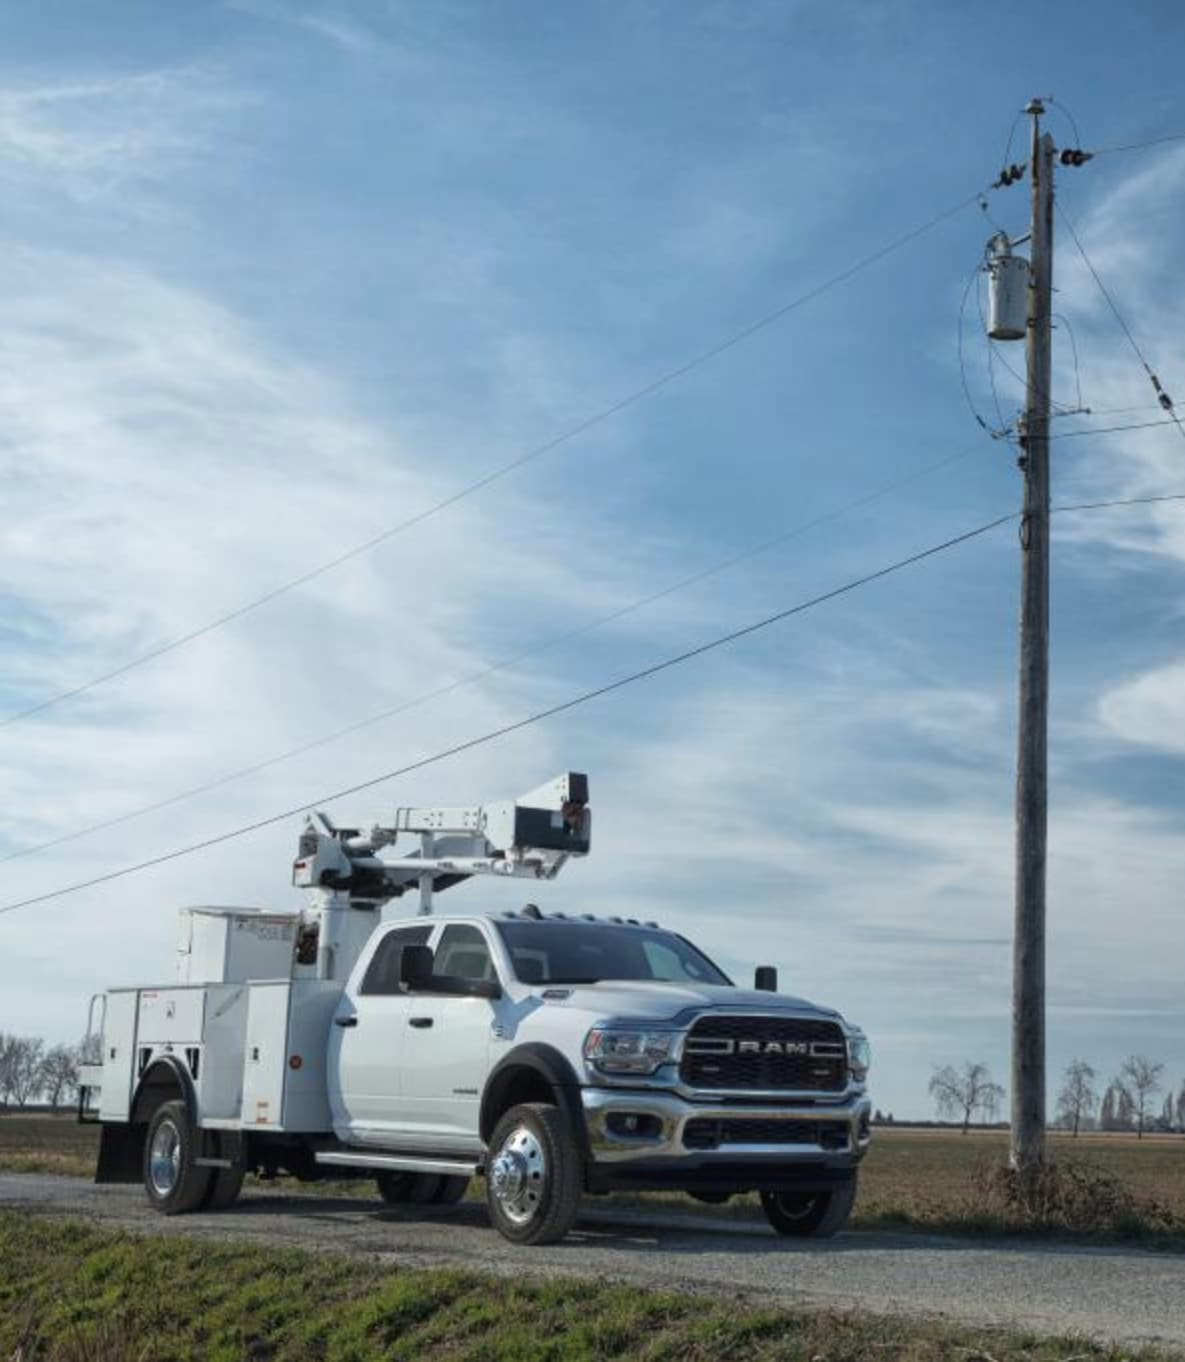 Parked Ram truck with lifting mechanism upfit next to phone pole